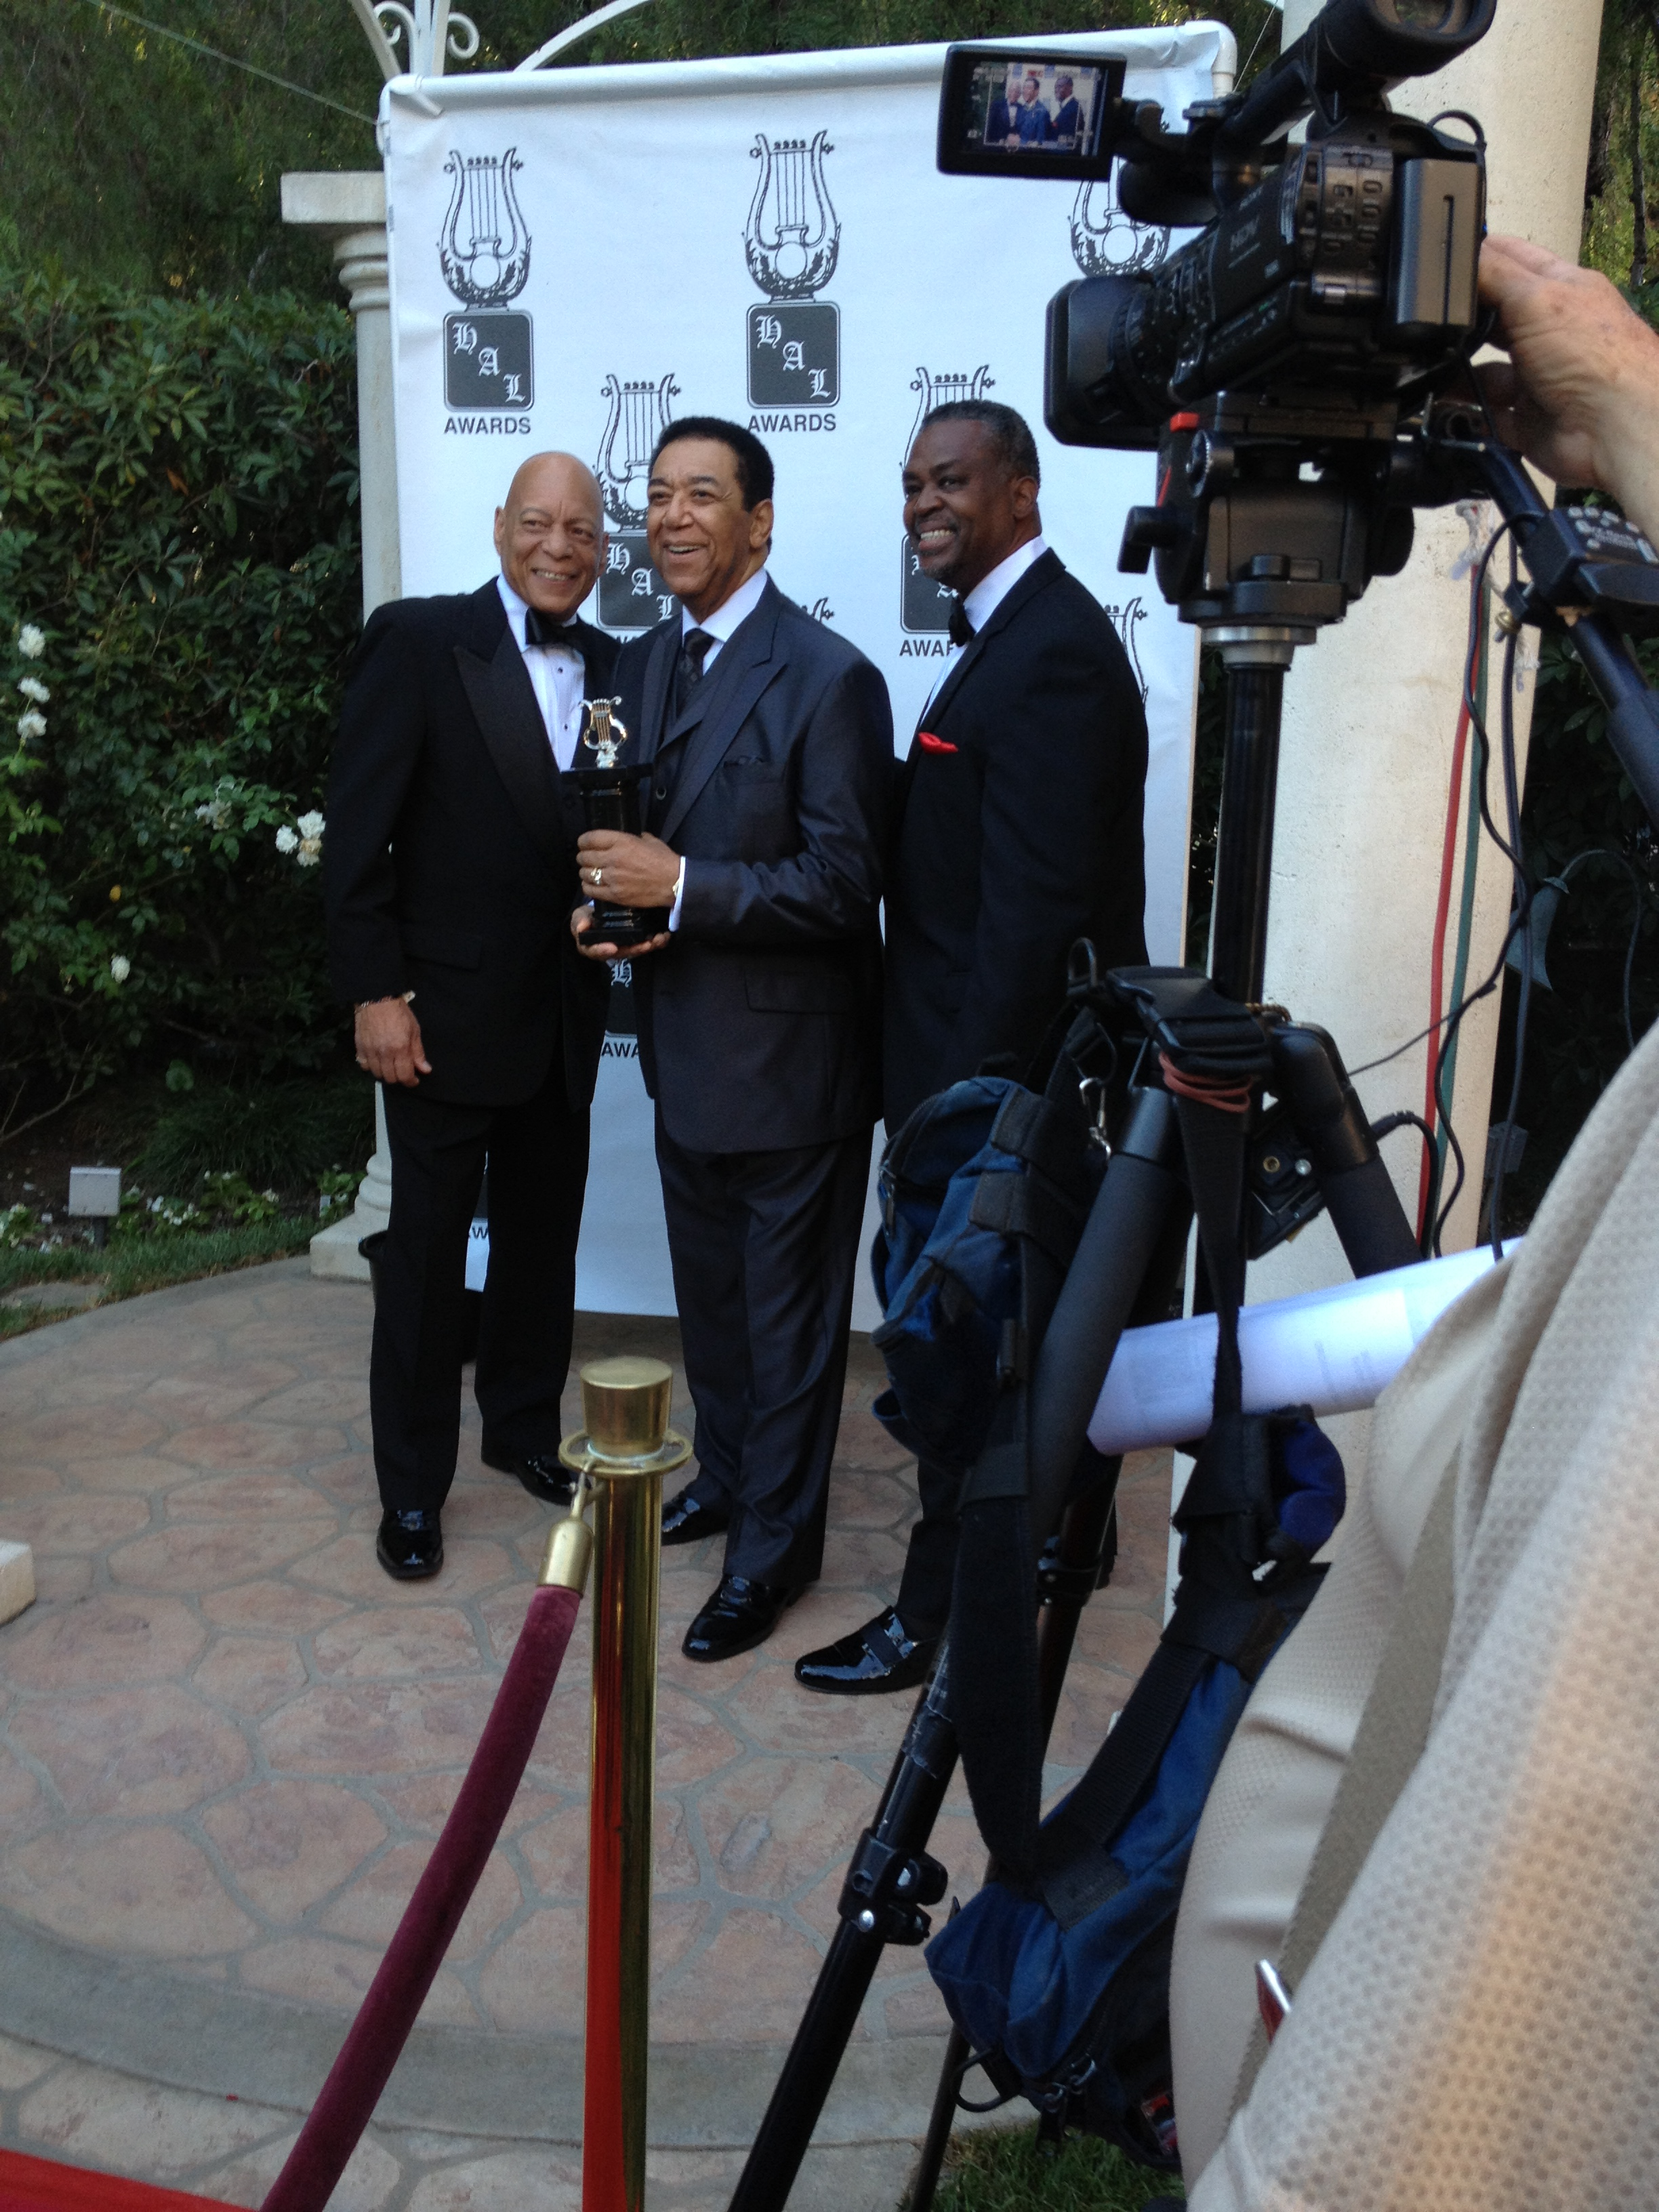 Terry holding his award on the press red carpet with Stan and Starling.